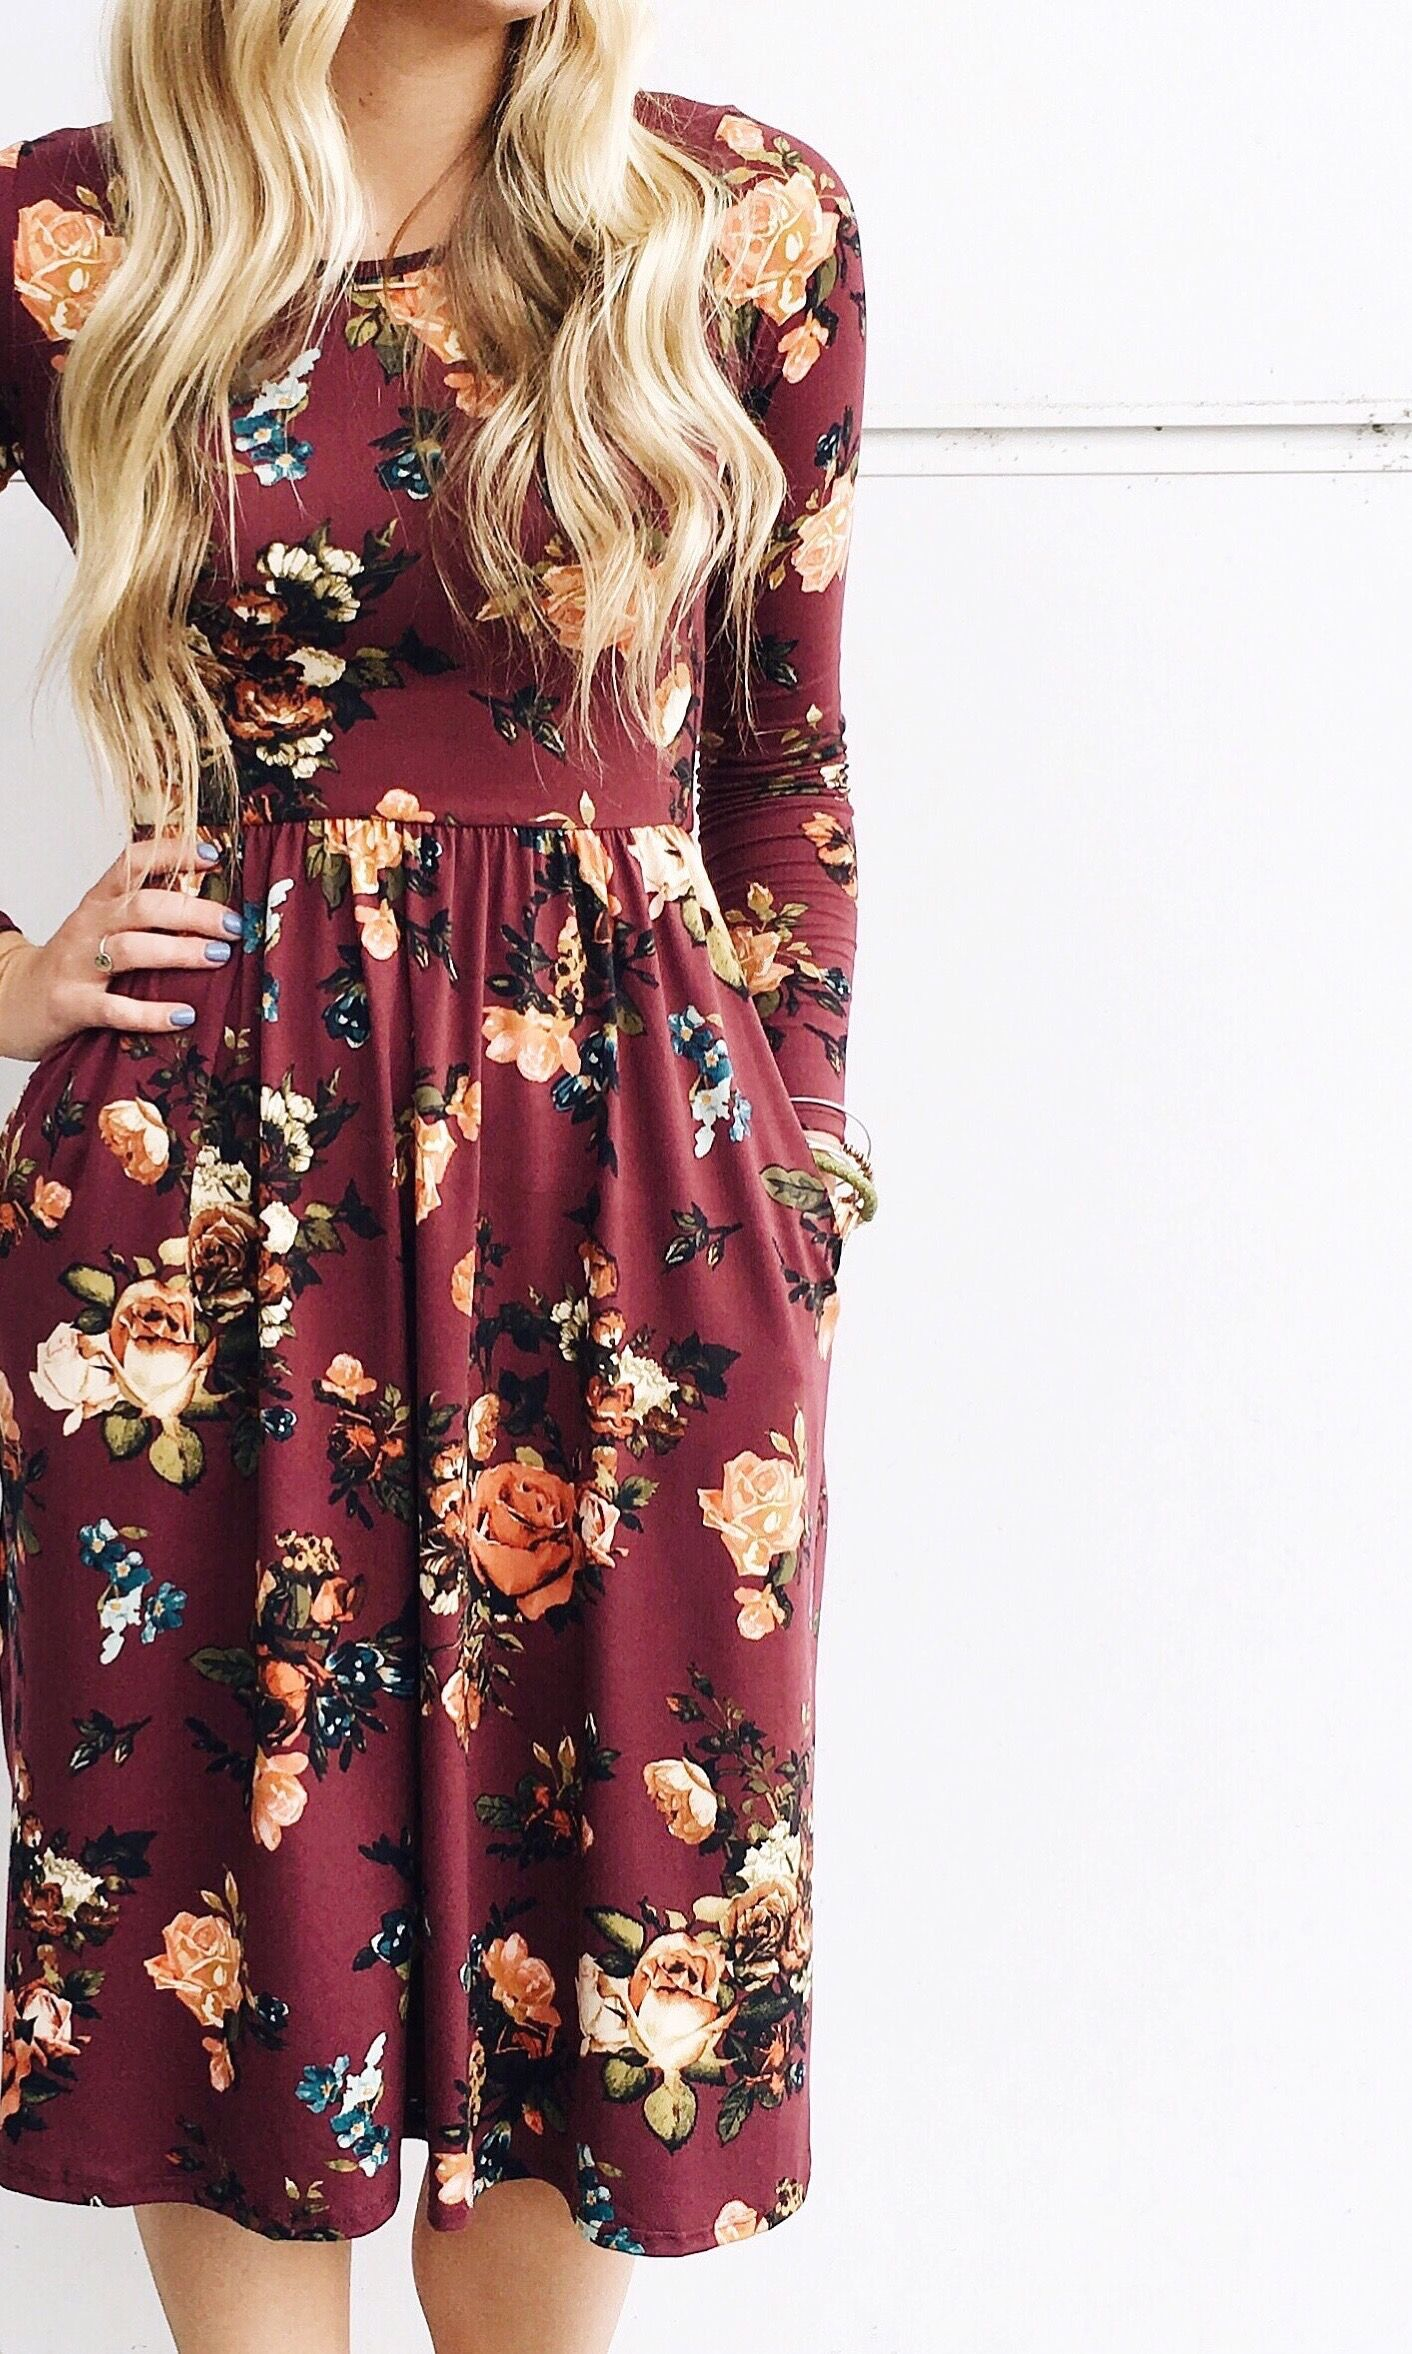 e222f8dffc45 Fall Florals | ROOLEE. Fall Florals | ROOLEE Long Sleeve Winter Dresses, Long  Floral Dresses, Fall Floral Dress